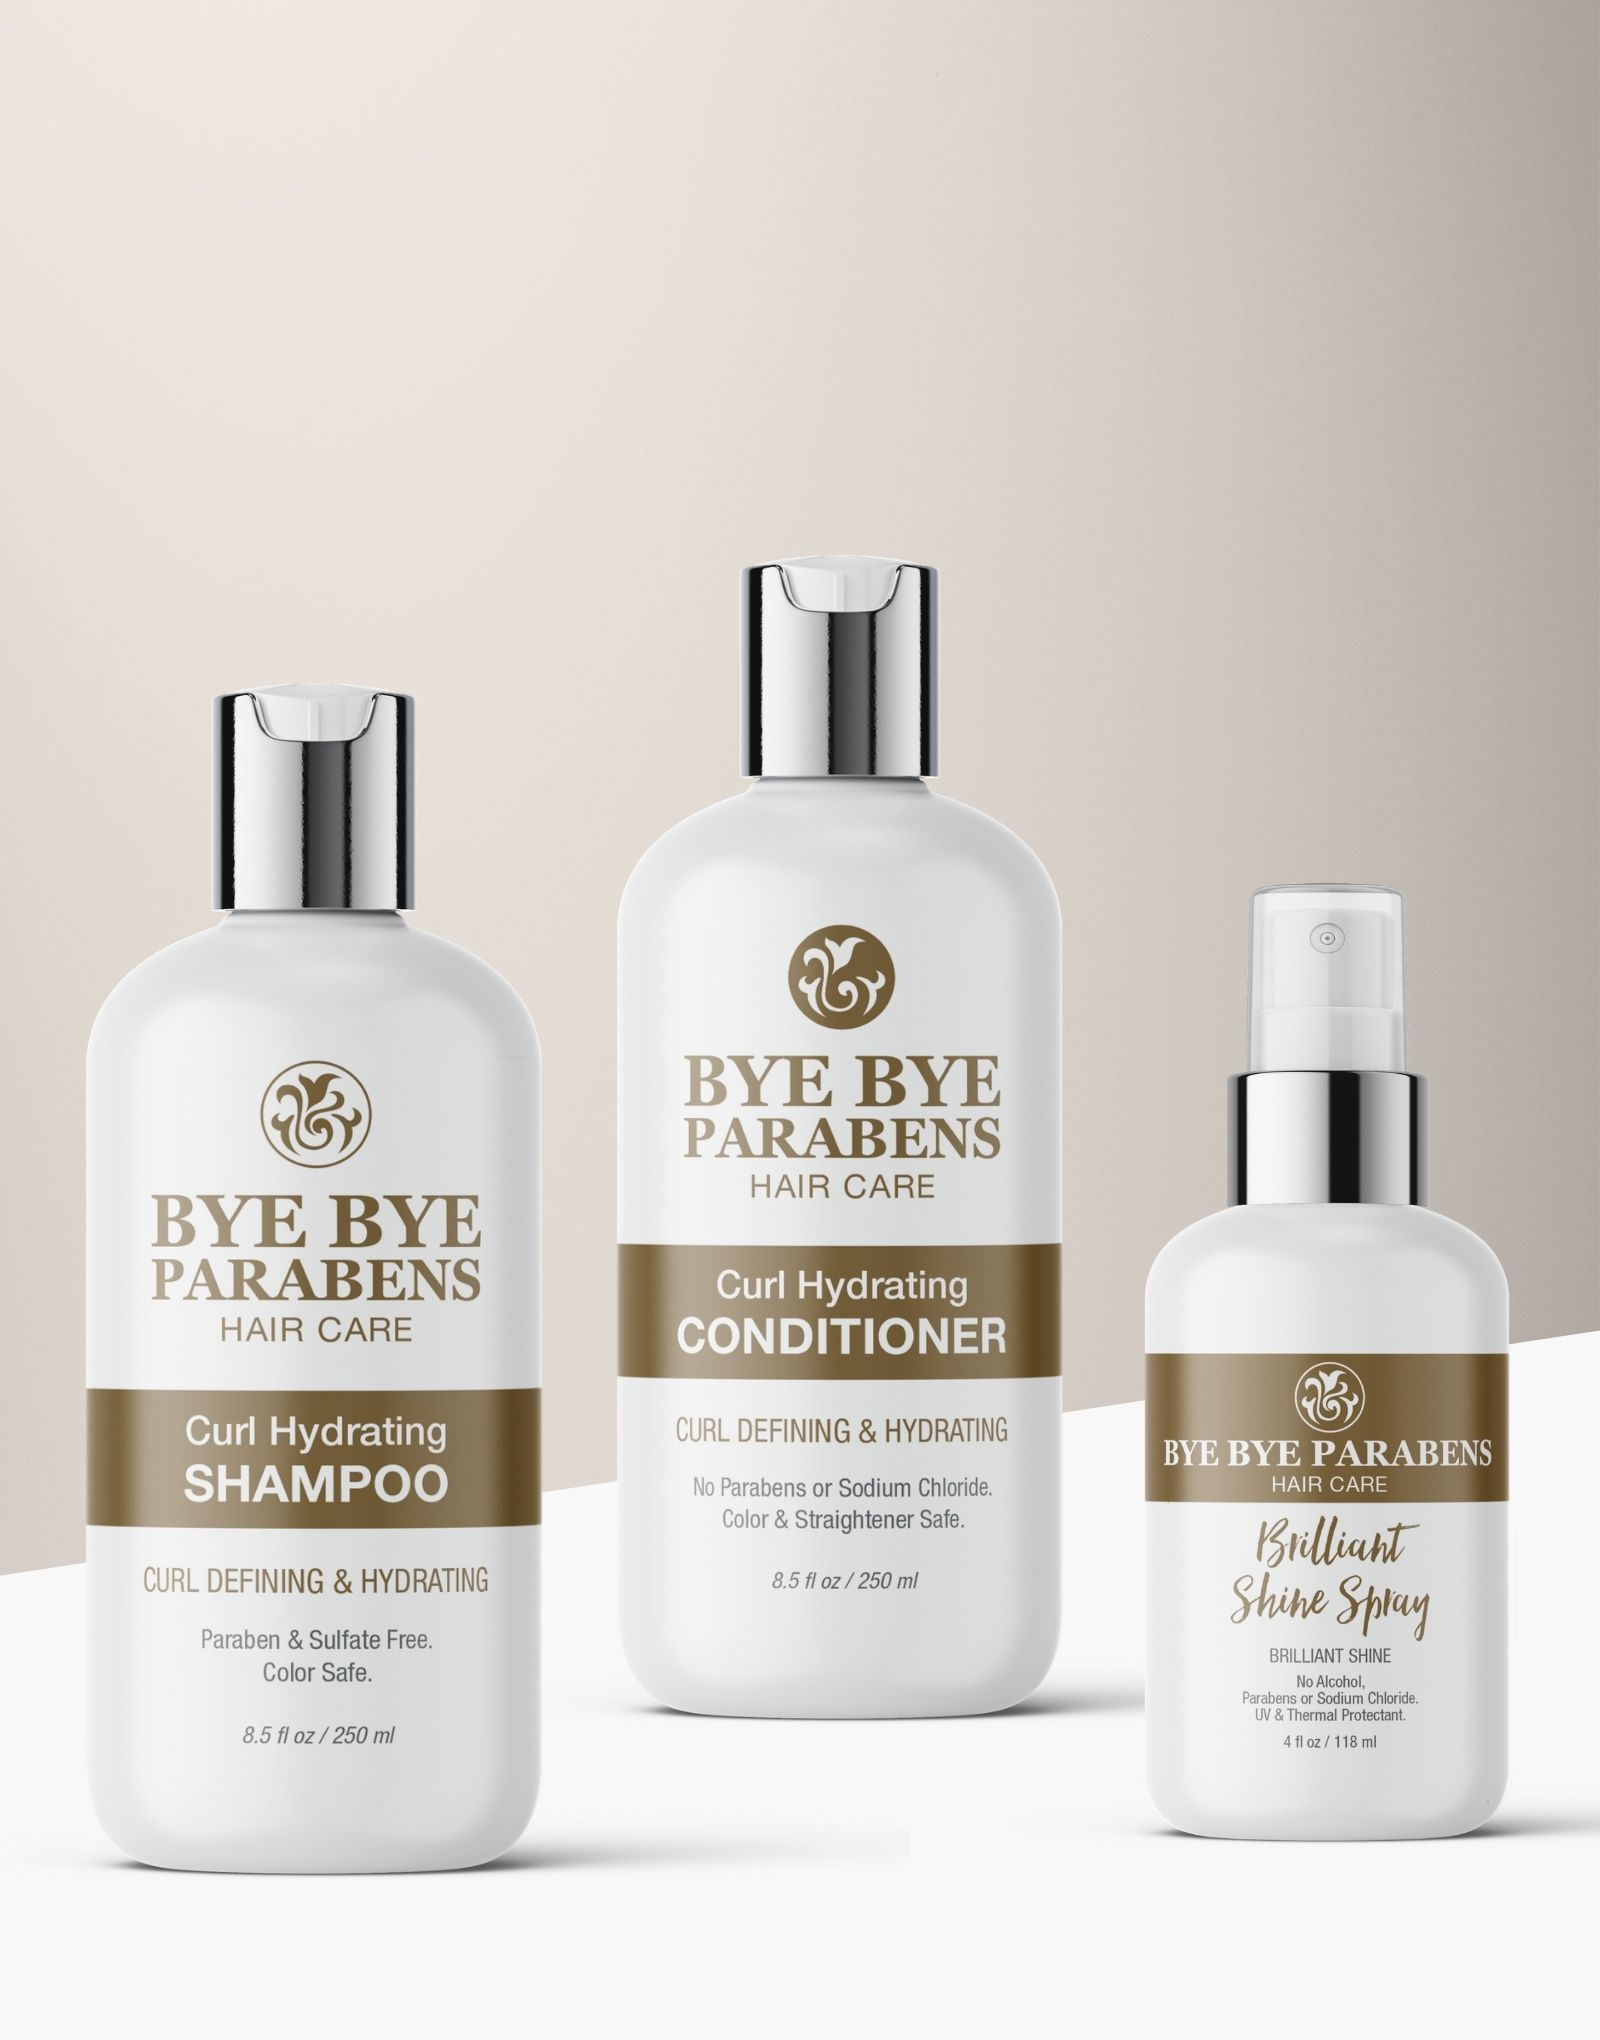 Curl Quencher Set Shampoo Conditioner Shine Hair Spray for curly hair | Bye Bye Parabens